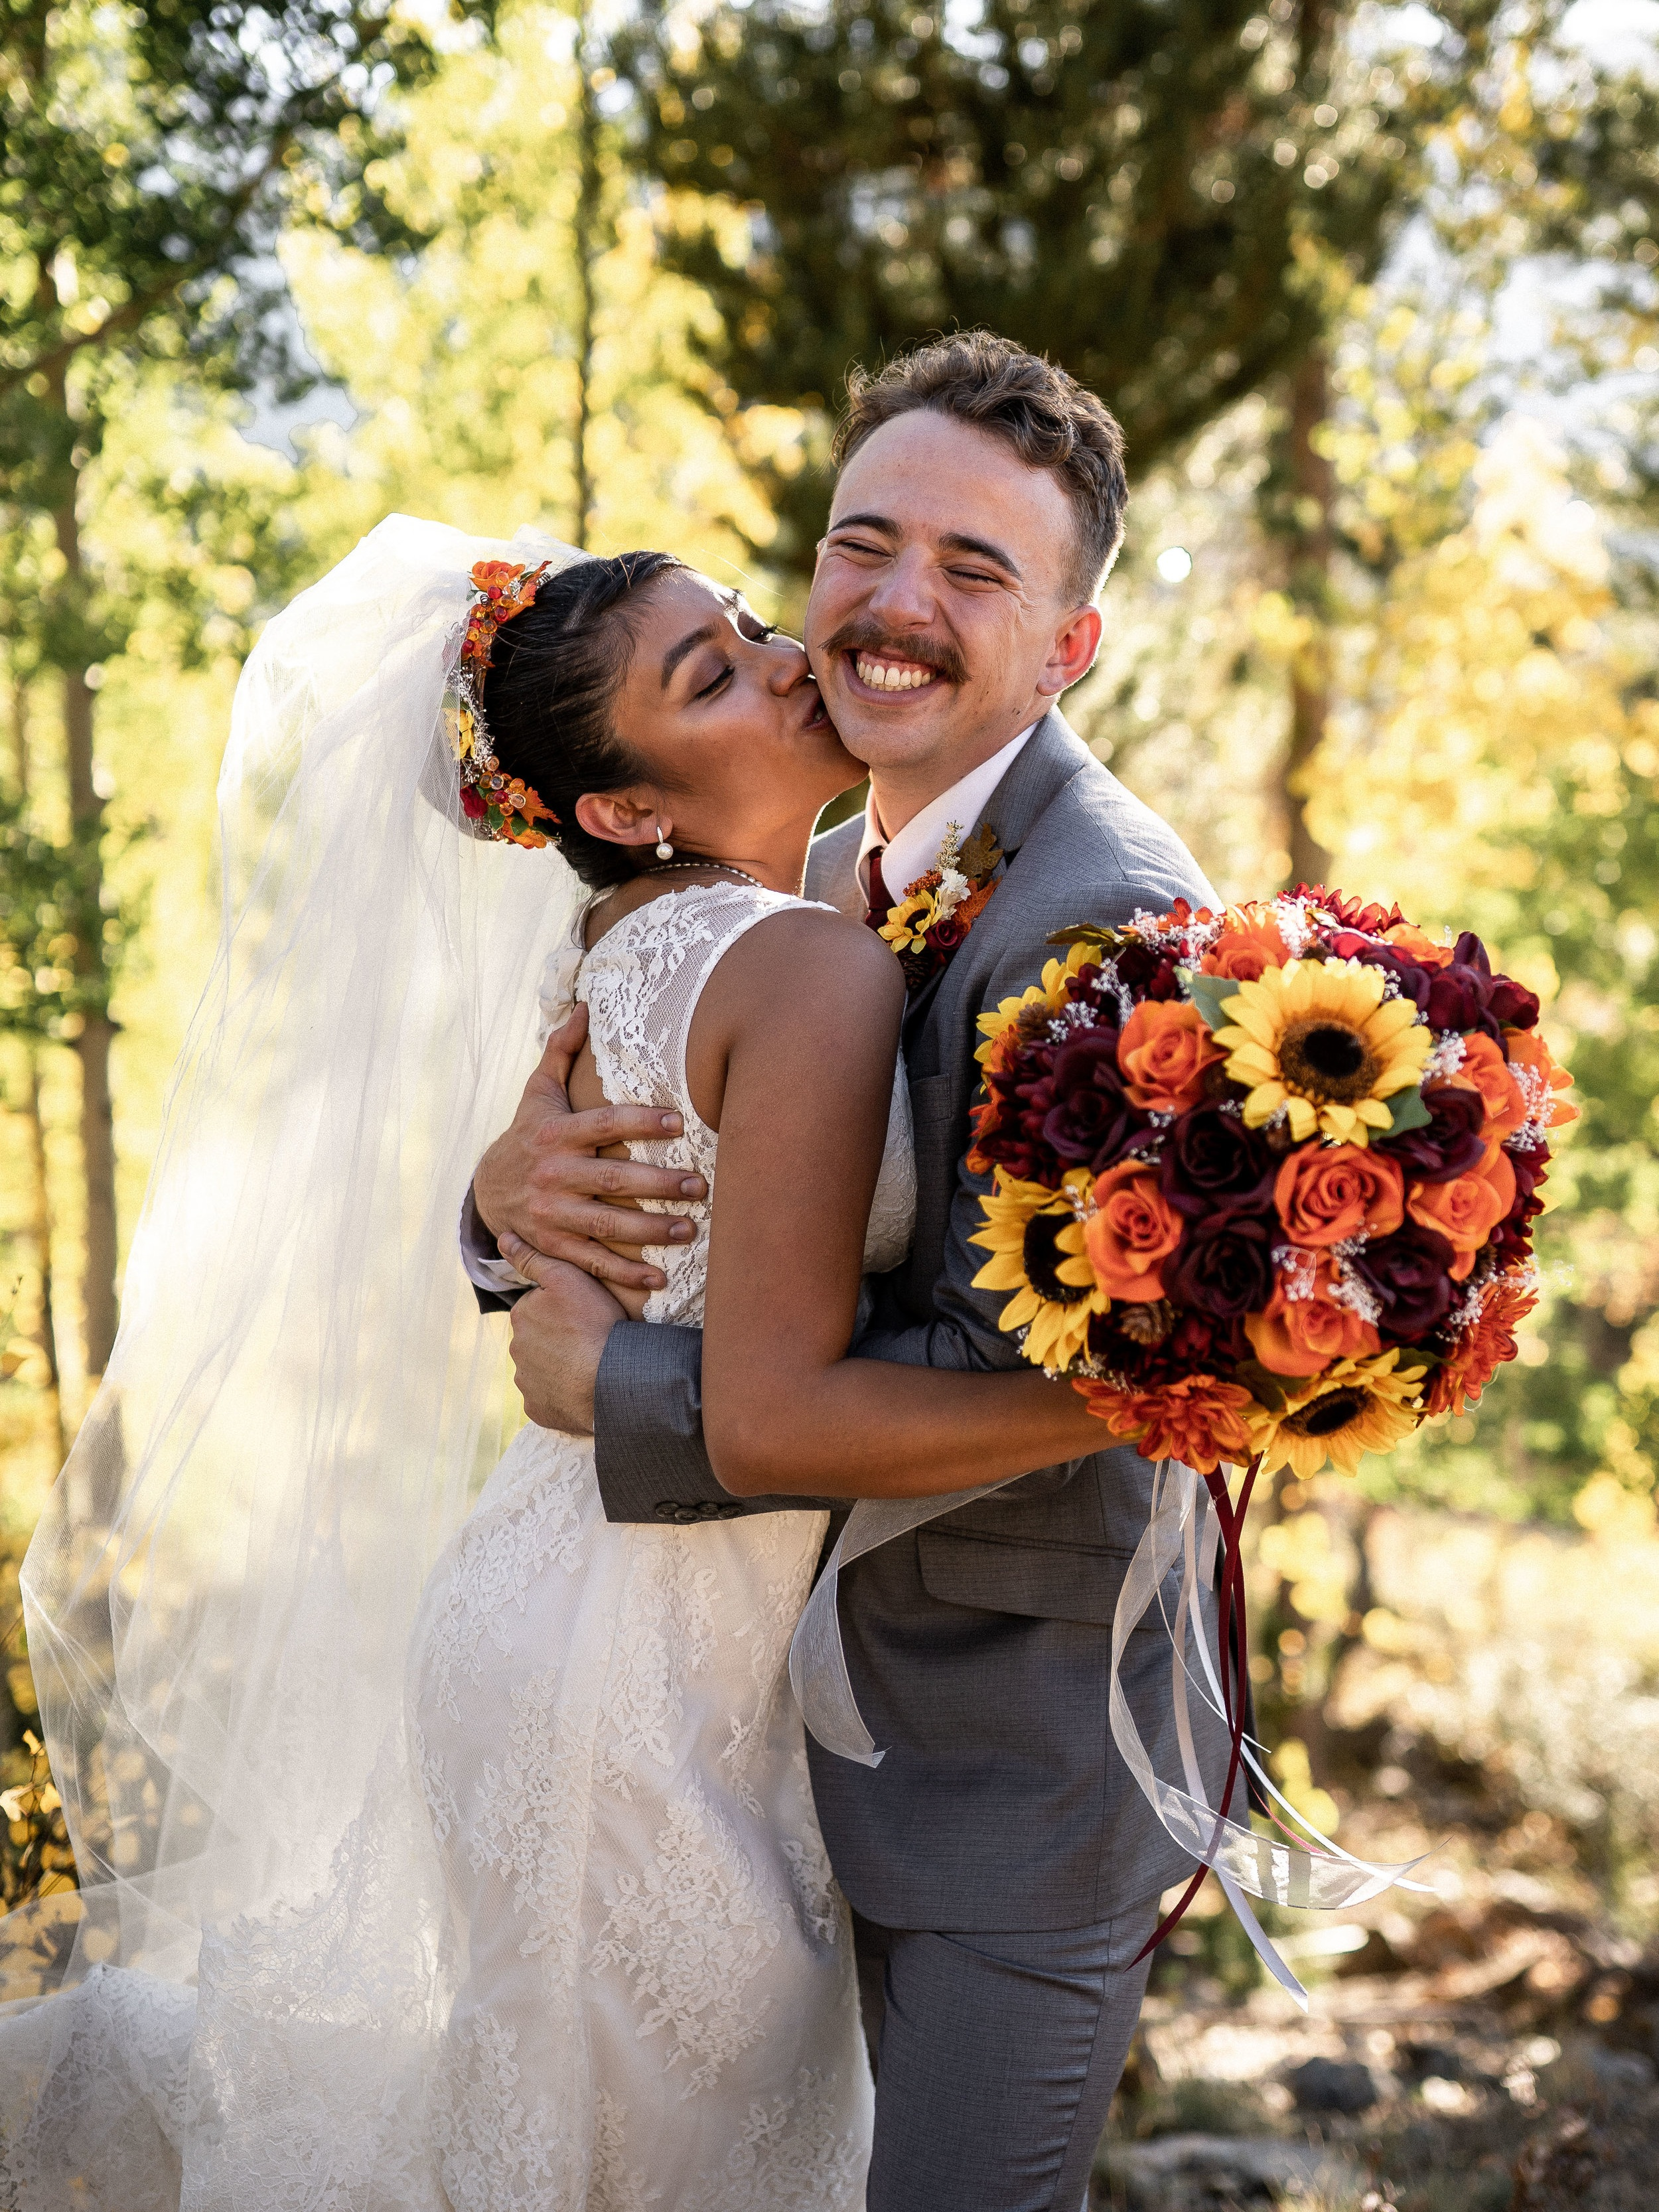 Weddings - Wedding Photography and Videography Services.